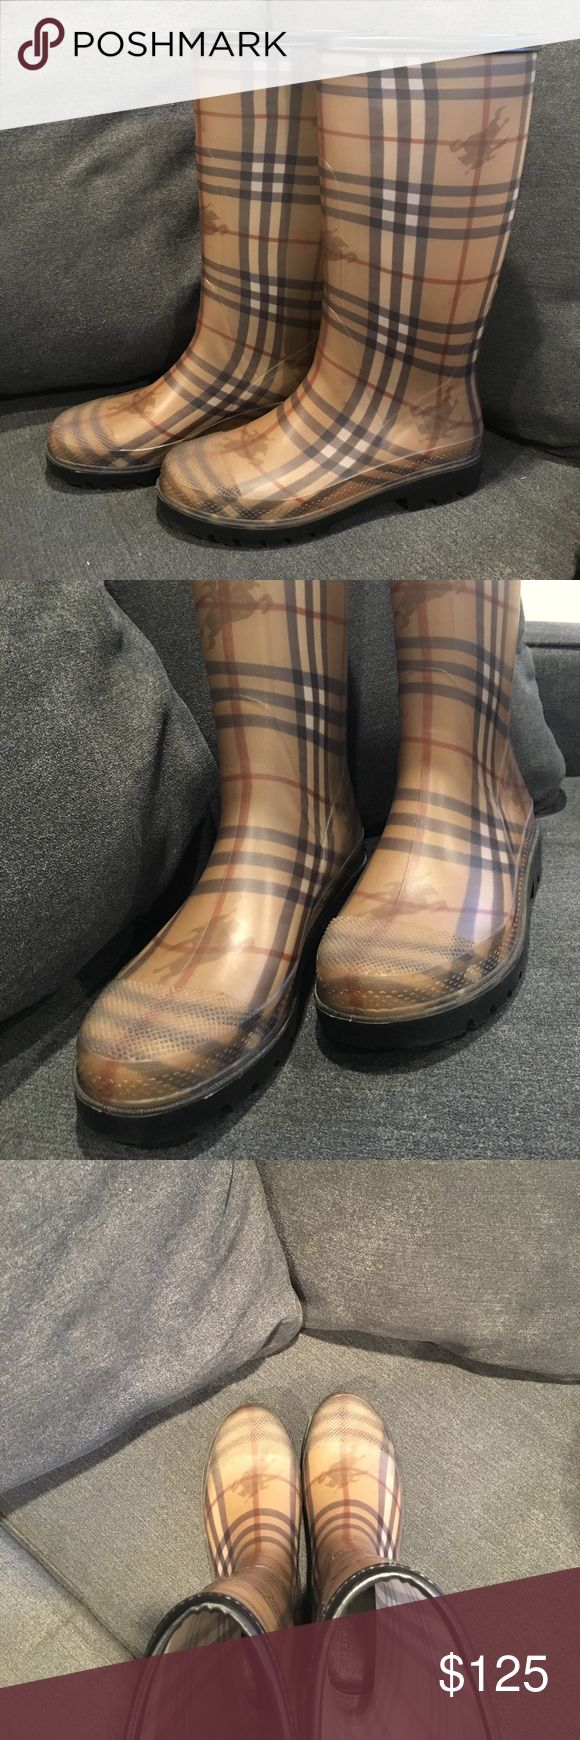 ☂️⛈Burberry Rain Boot! ⛈☂️ This timeless boot goes with any ensemble and compliments your style perfectly! They are SUPER comfortable and will provide you with everything a fashion forward rain boot should. Love them, just don't wear them enough; worn twice since owning. Grab them for your closet! 💦☔️ Sizing: these boots are marked as a 40 (which is a 10 in US sizing). They range between a 9.5 and a 10!! Burberry Shoes Winter & Rain Boots